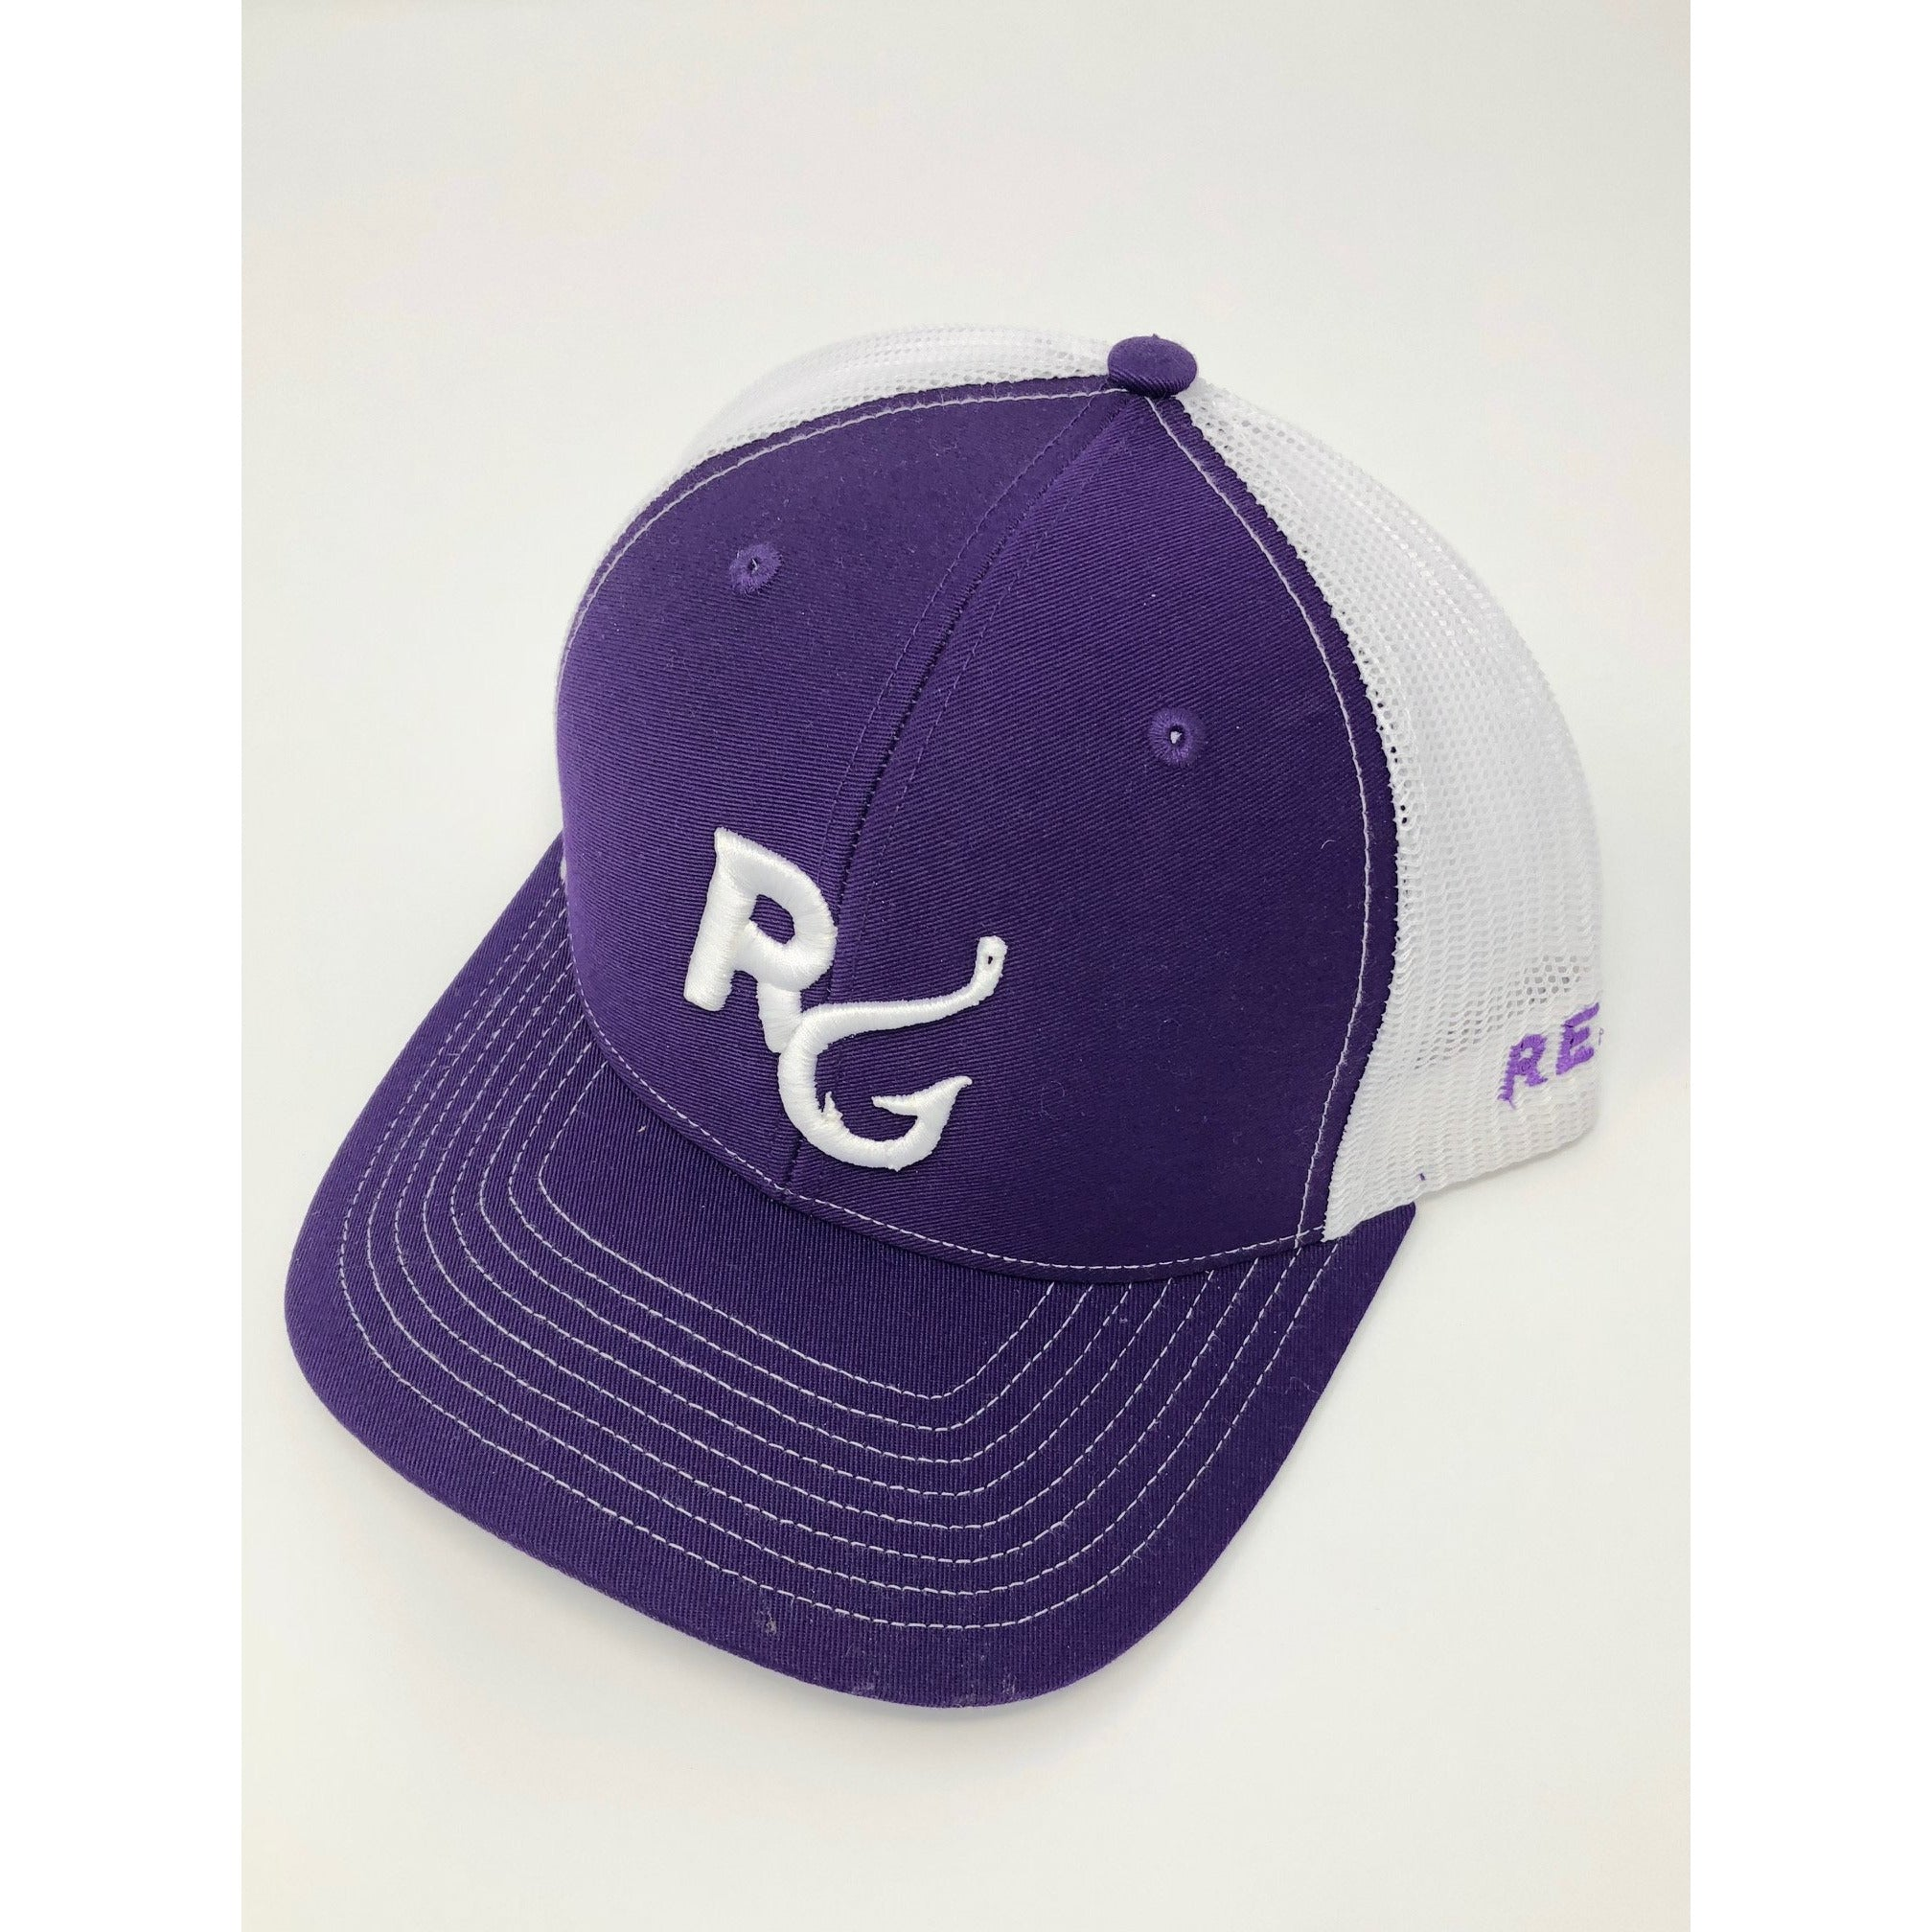 Reel Girls Classic Logo Adjustable Trucker Hat - Purple with White